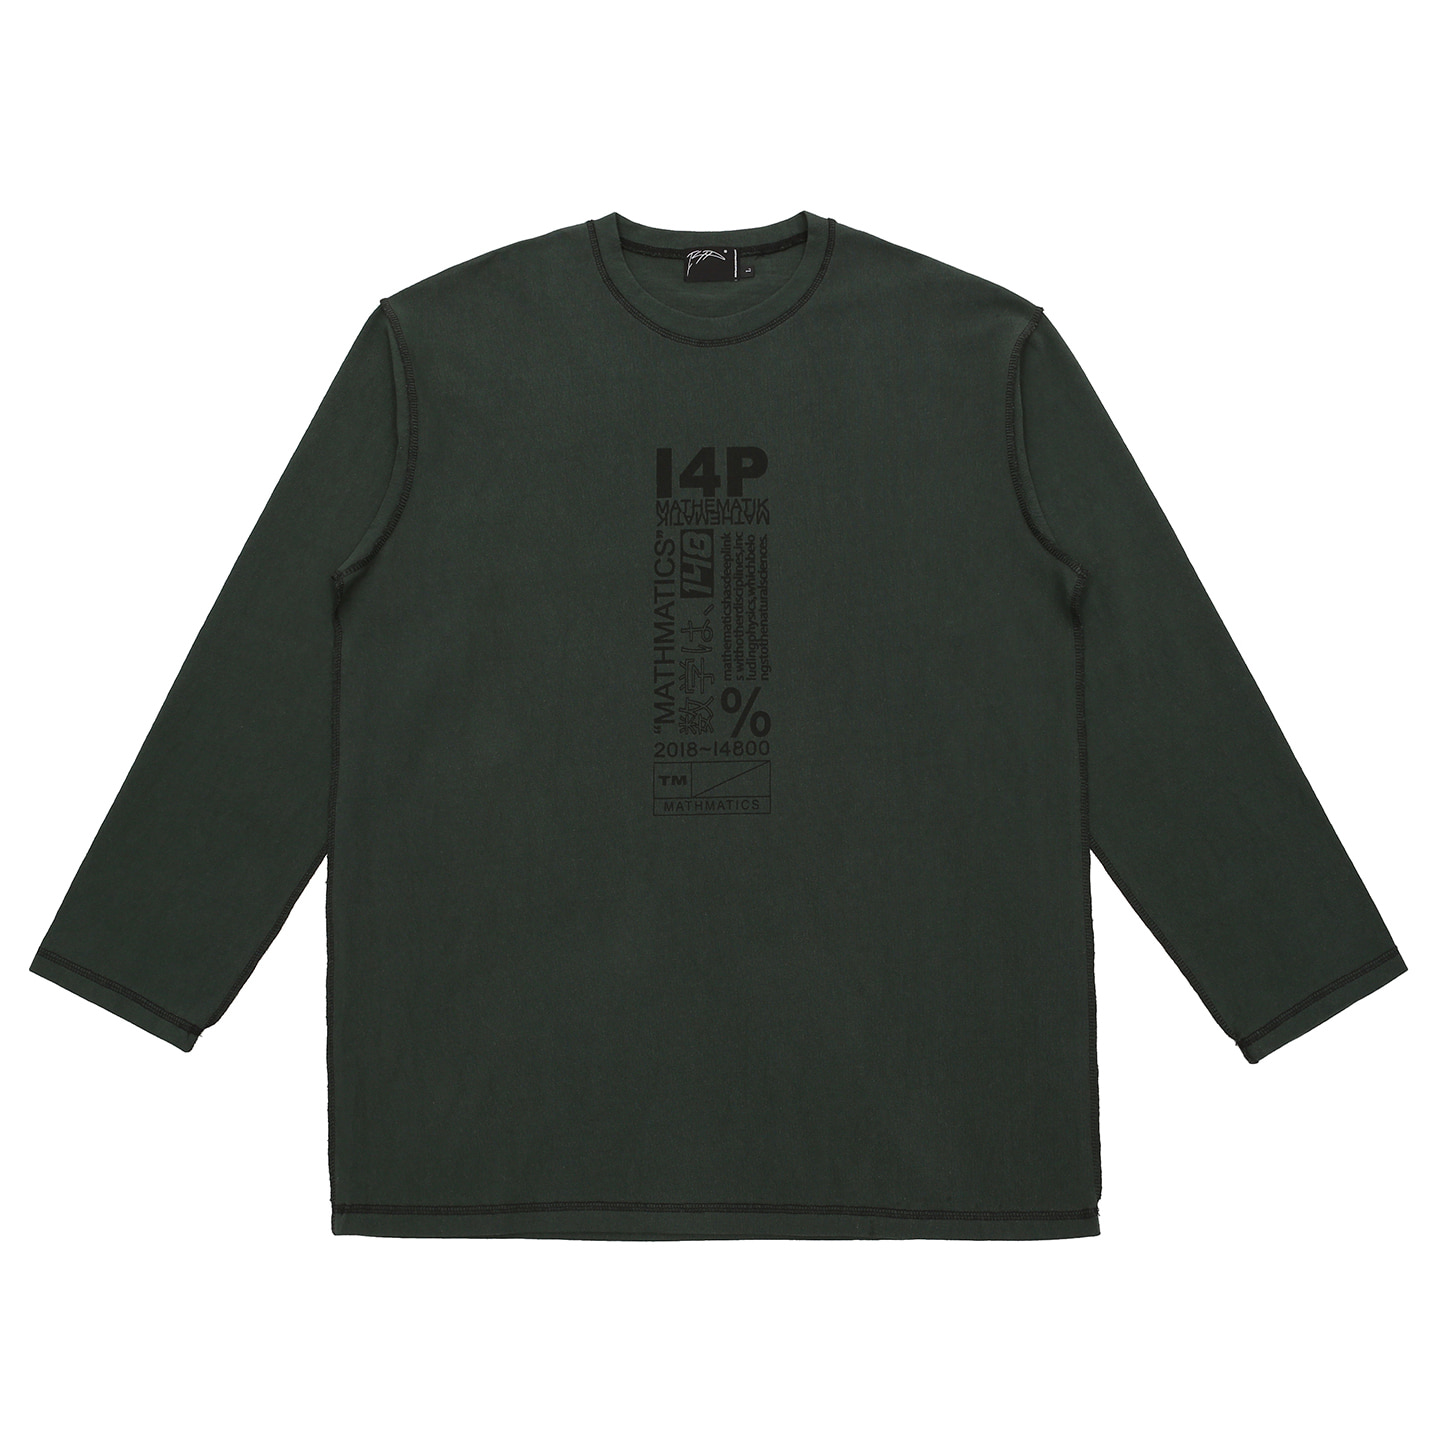 [아이사피] I4P Stitch Long Sleeve Green